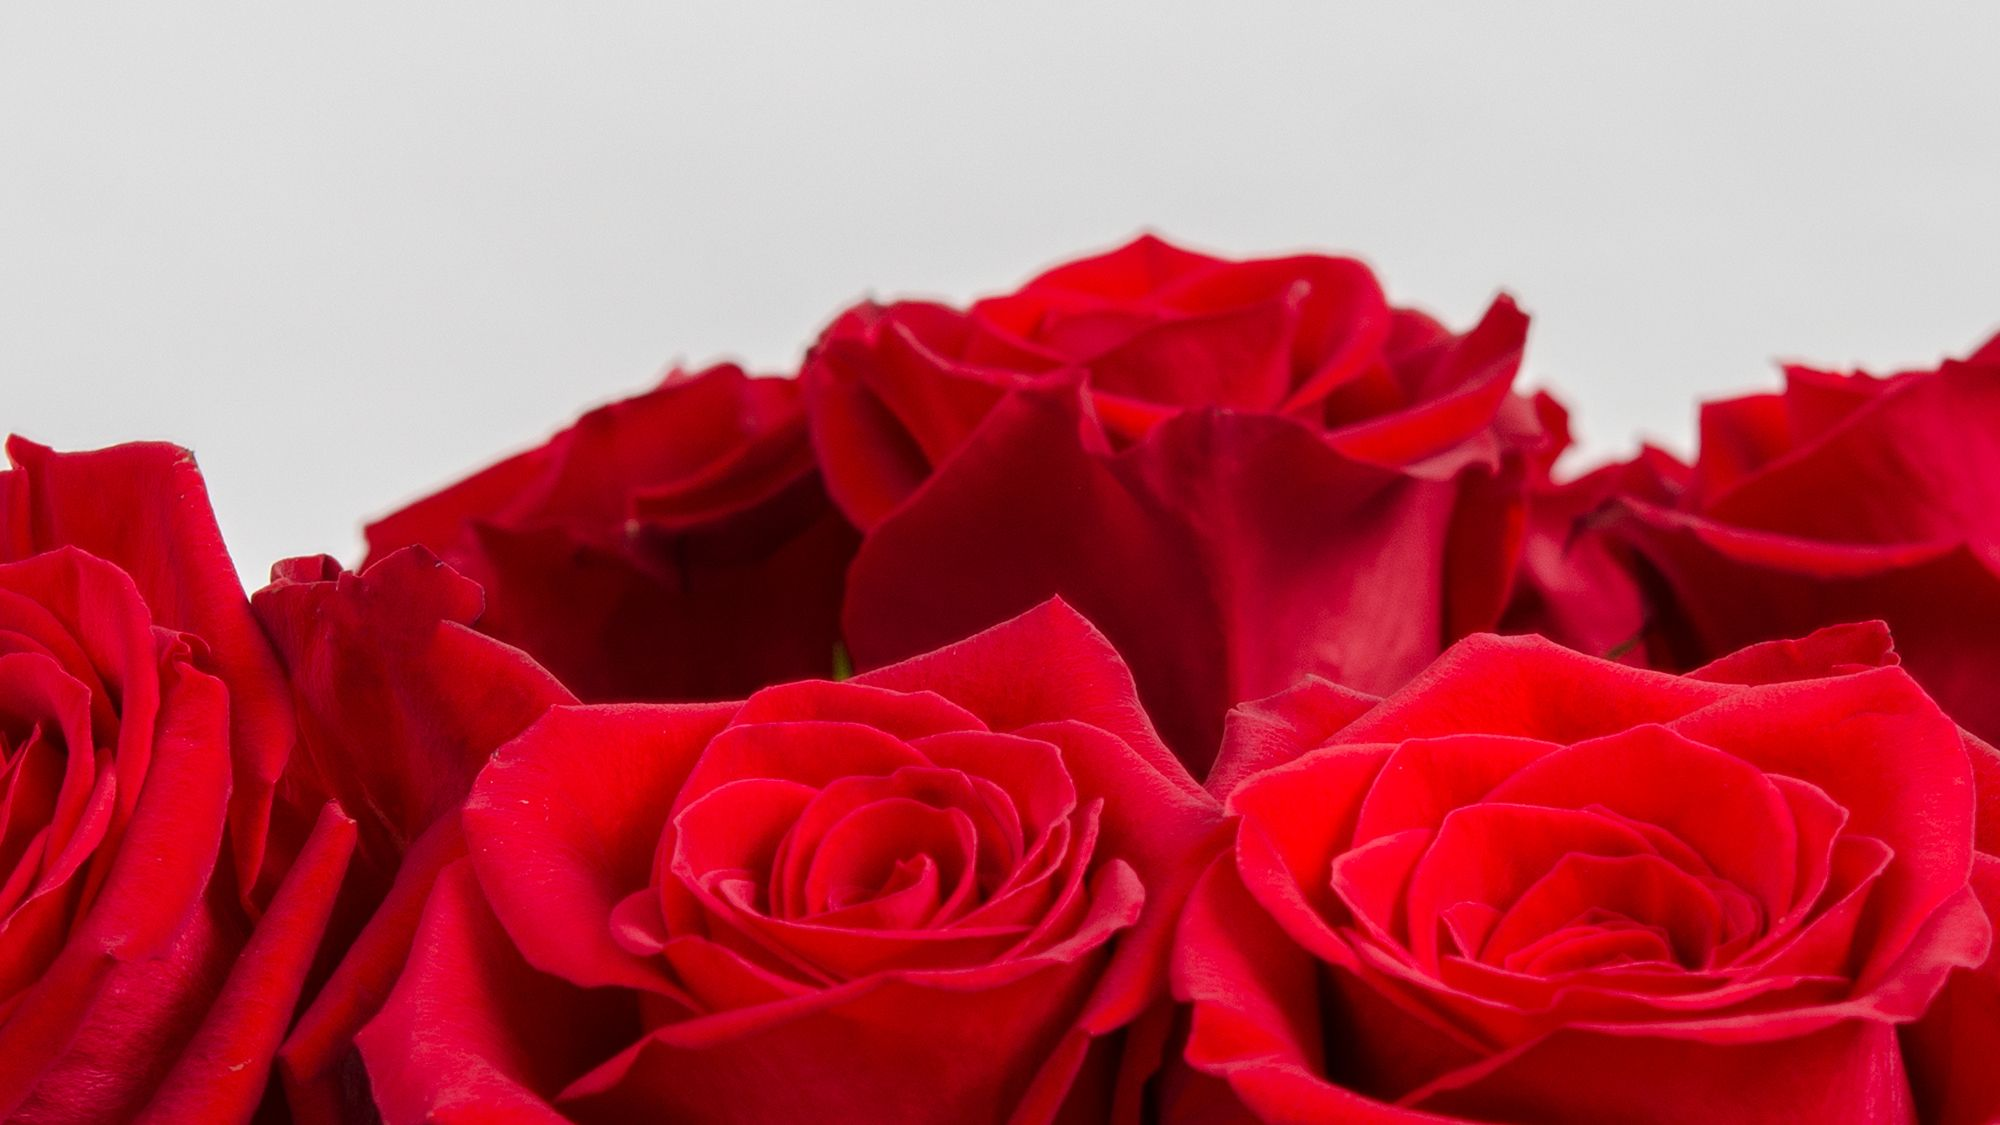 Freedom is the perfect red rose grown by royal flowers this freedom is the perfect red rose grown by royal flowers this bright red rose biocorpaavc Choice Image